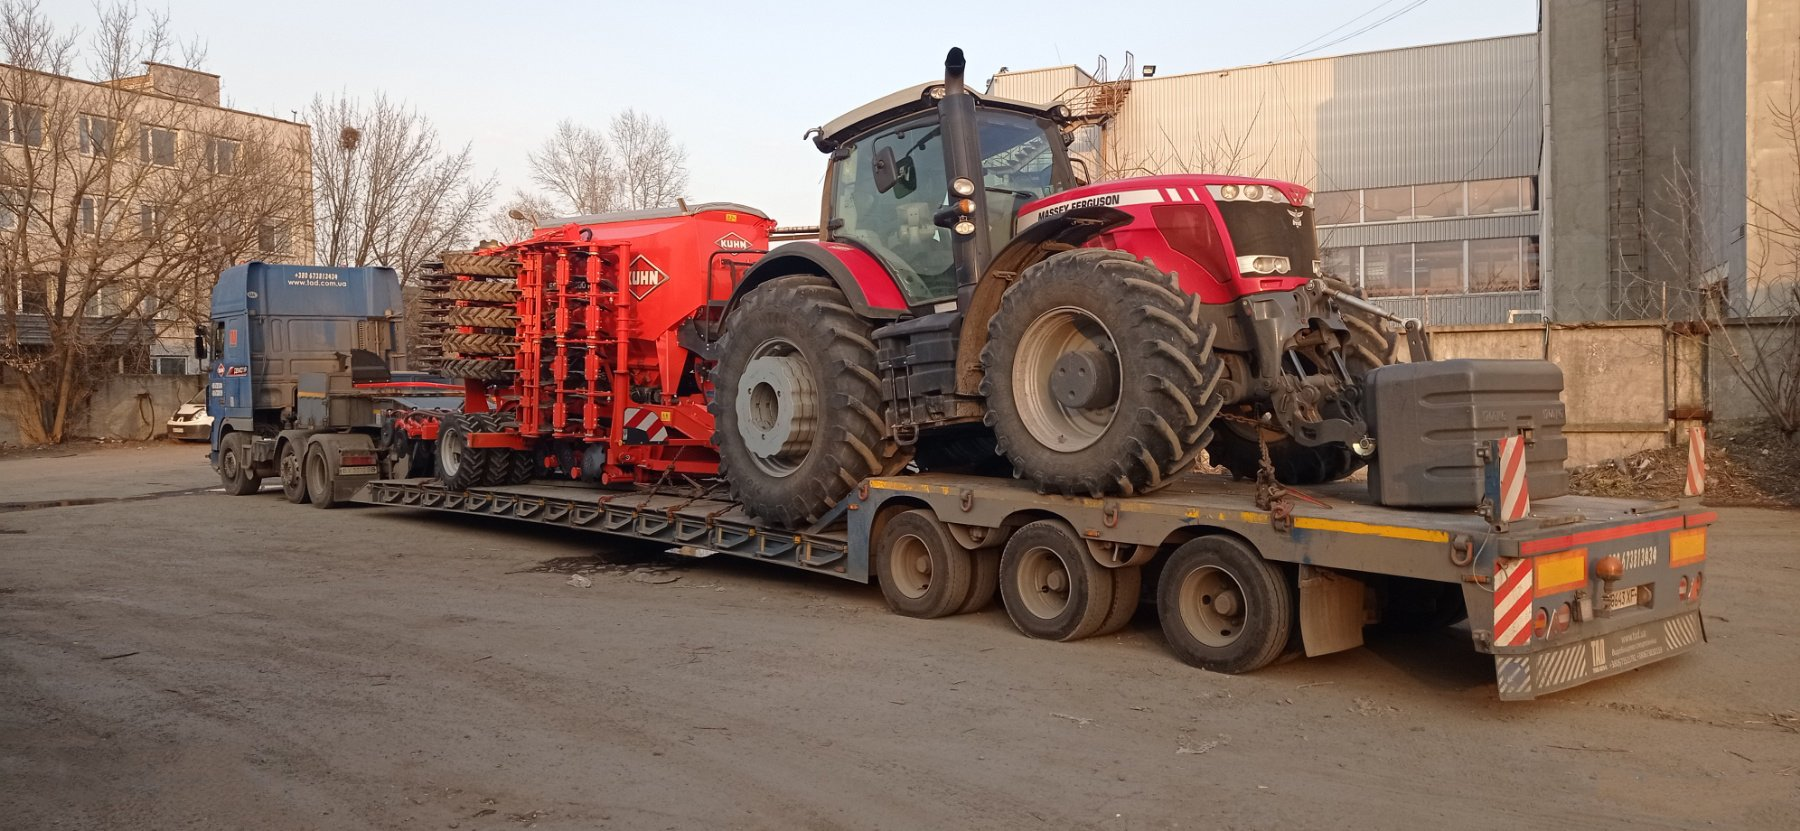 Transporting of Massey tractor